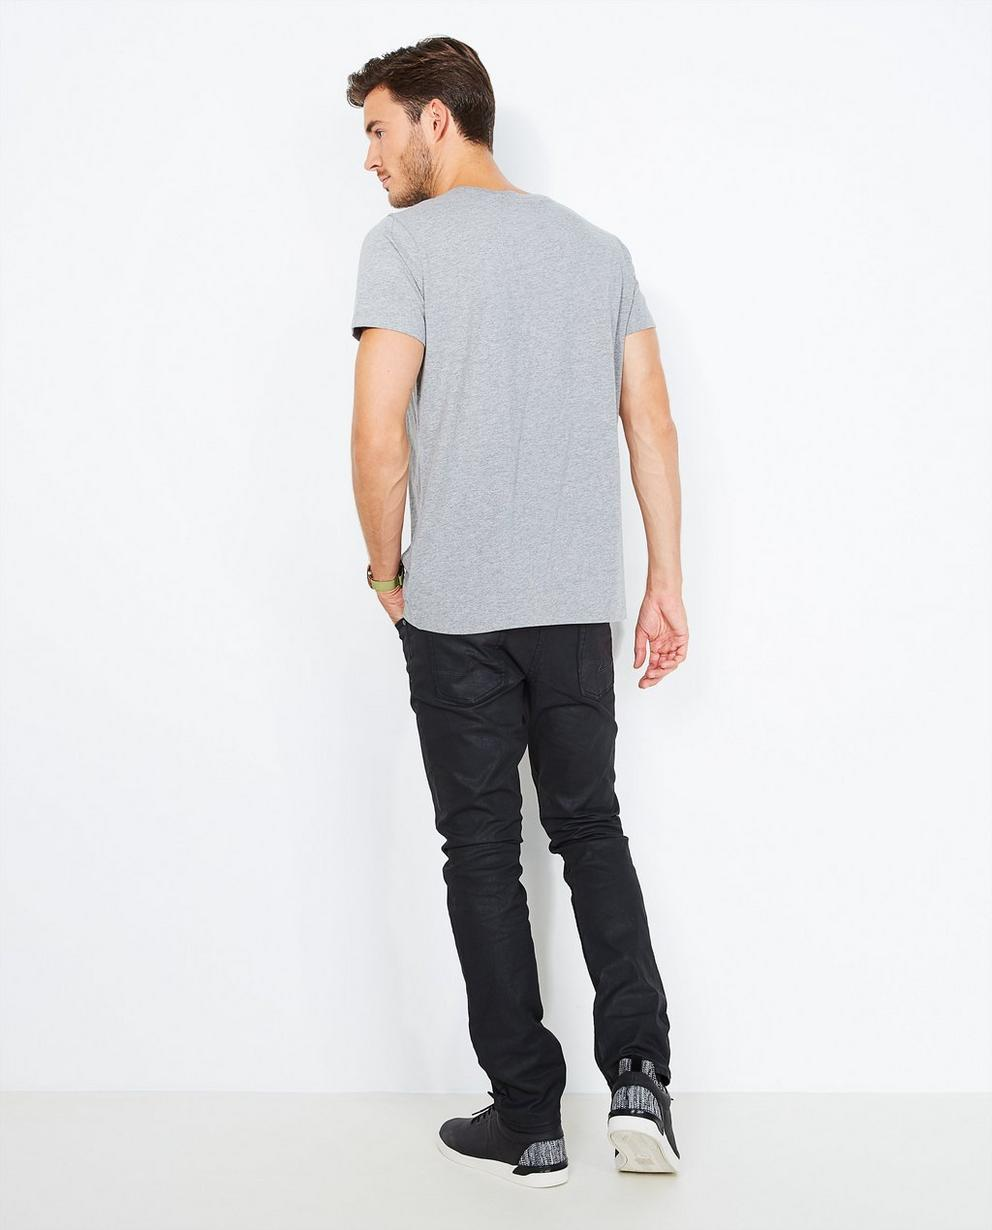 Jeans - black - Jeans slim fit noir